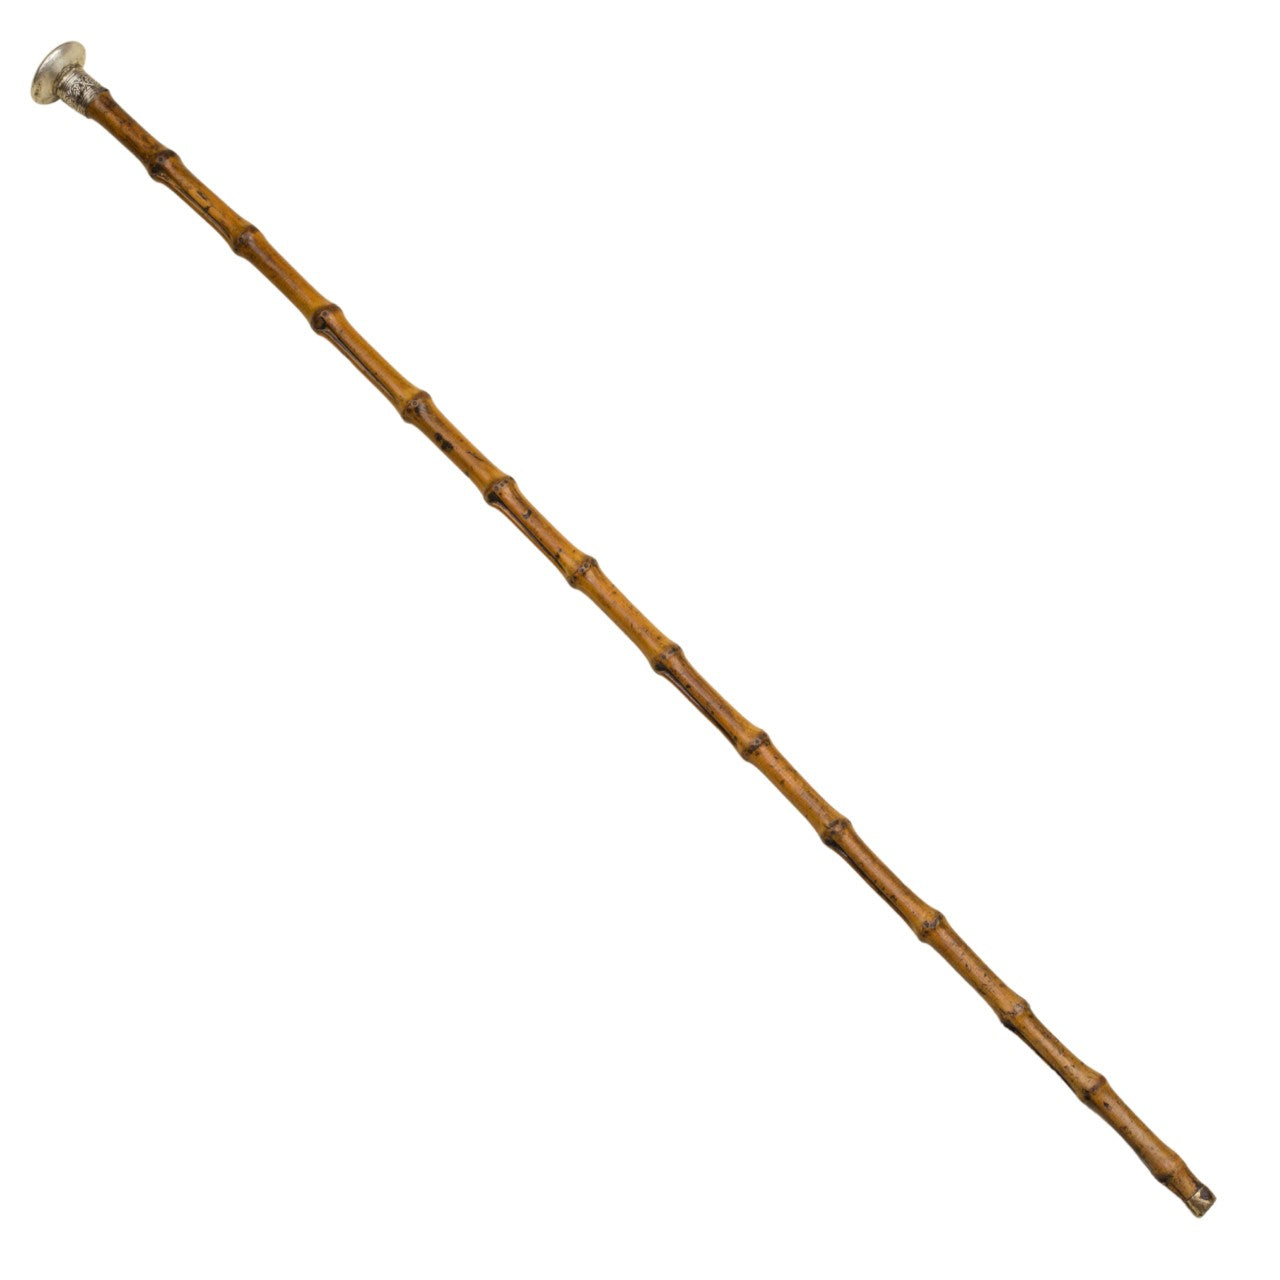 Whangee Bamboo Inspection Cane with Silver Pommel